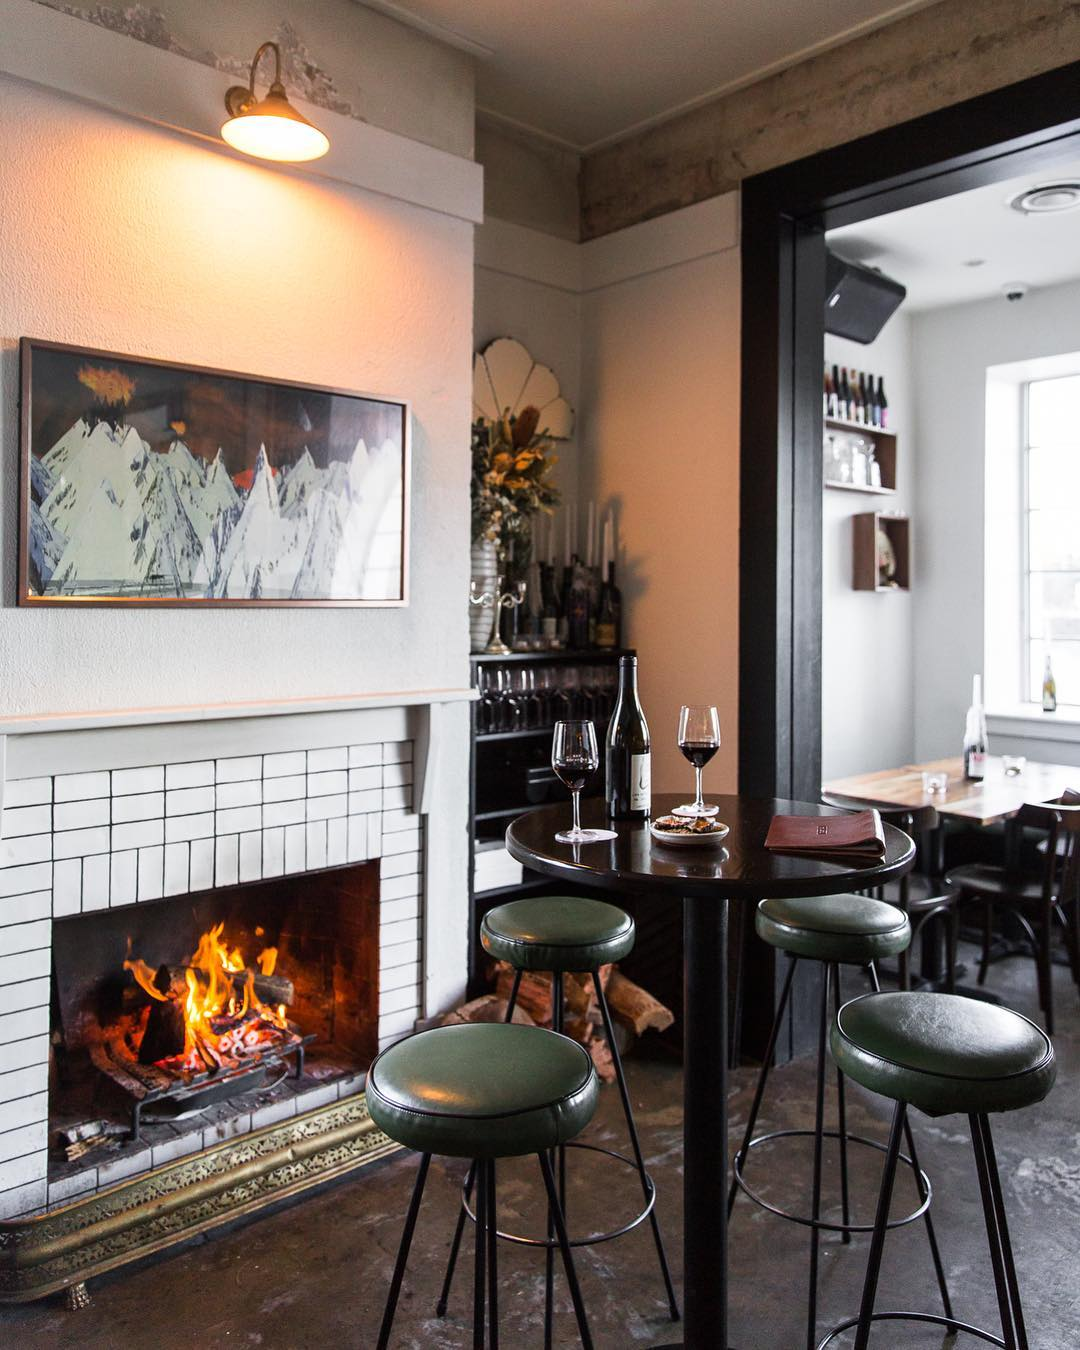 A bar table with a bottle and two glasses of red wine in front of the fireplace at Bar Rochford in Canberra